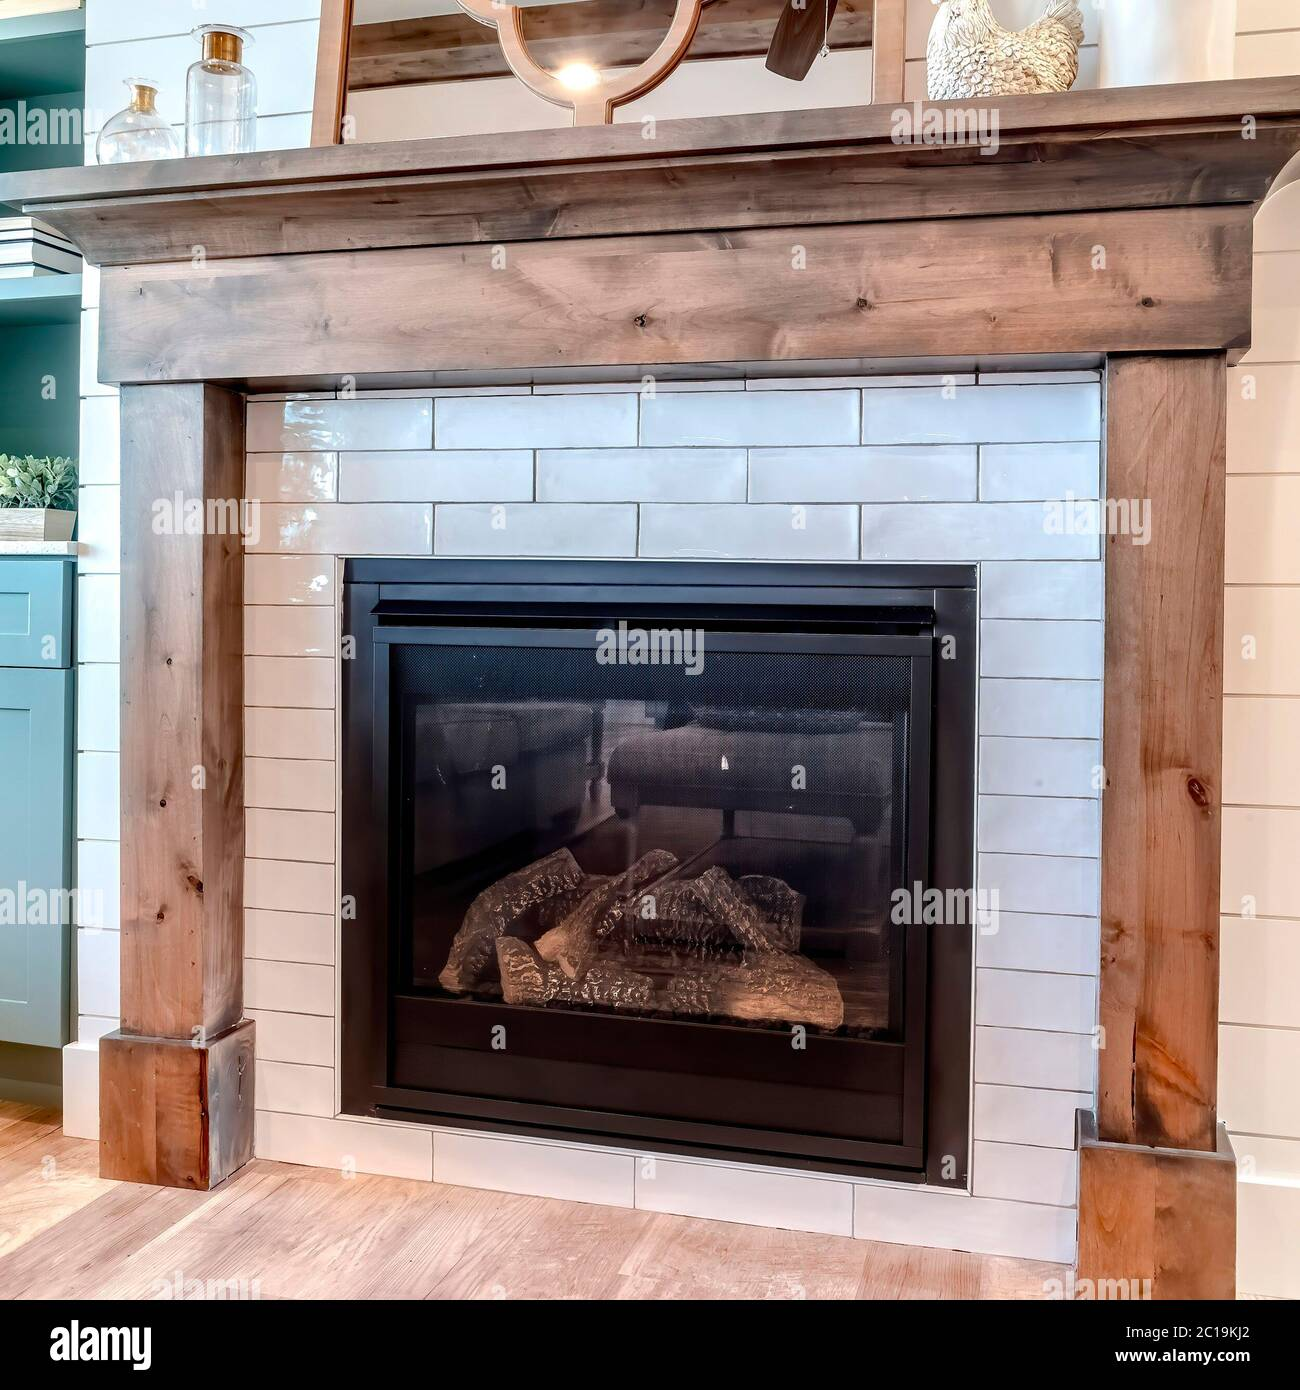 Square Interior Of Living Room With Fireplace And Fitted Display And Storage Cabinet Stock Photo Alamy